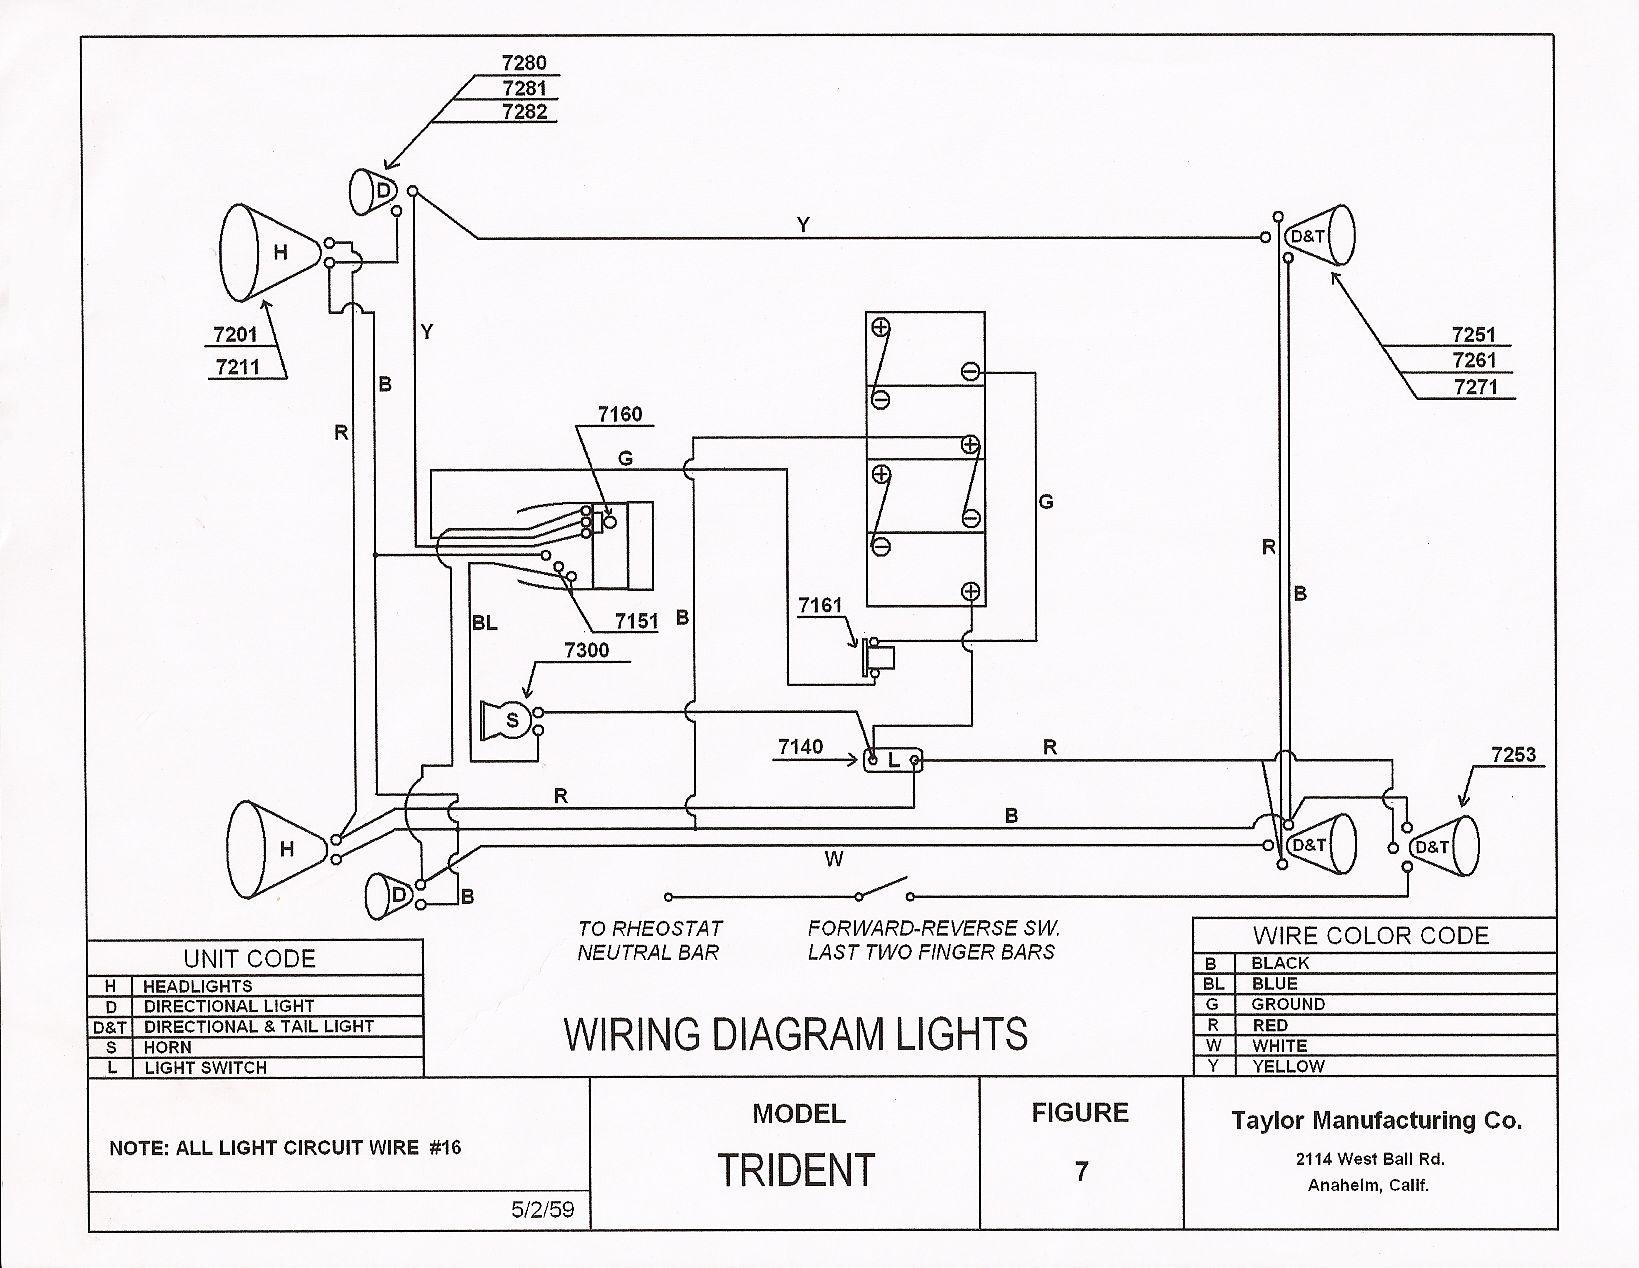 dunn b248 wiring diagram dunn free printable wiring diagrams